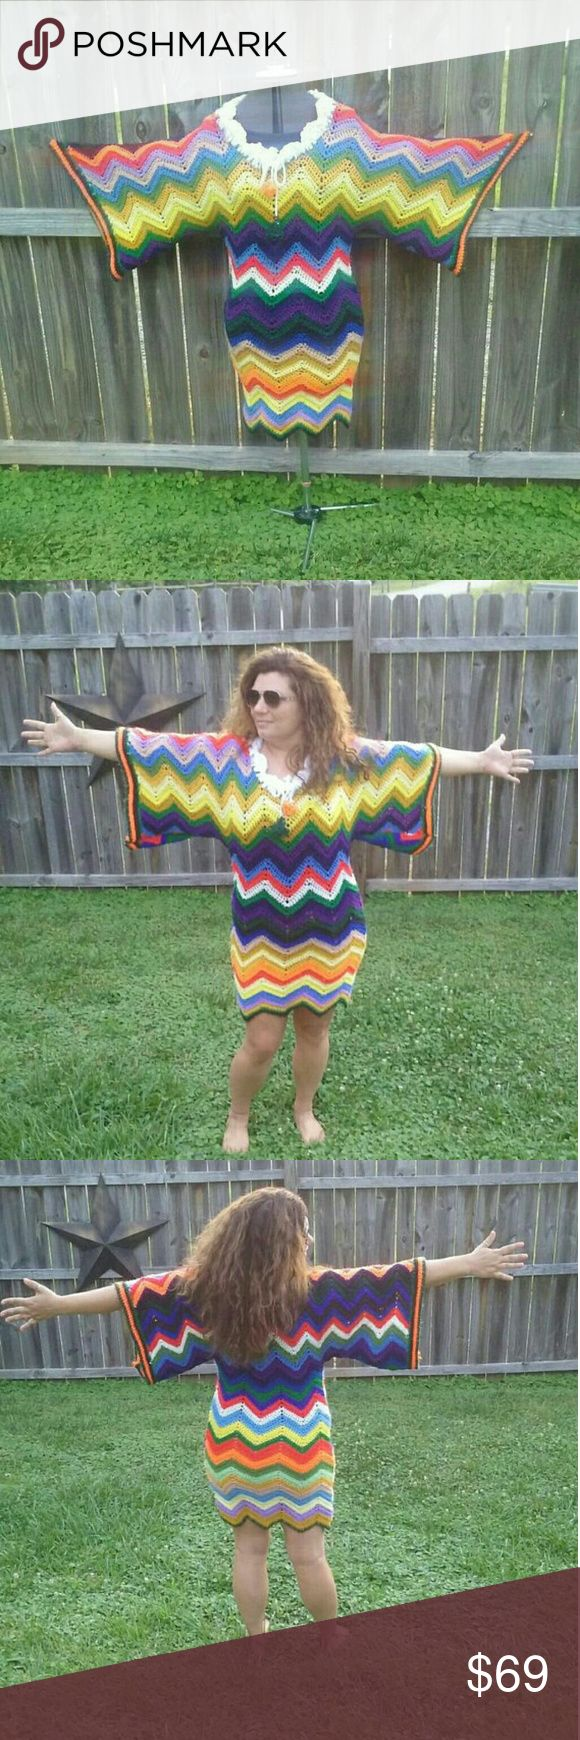 """vintage Afghan Chevron Stripe Festival Dress I made this dress from a vintage afghan. Measures 39"""" long 20"""" across chest while hanging. I'm wearing it in the pictures, I wear a size 10 - 12. Its stretchy and very forgiving. Dresses Midi"""